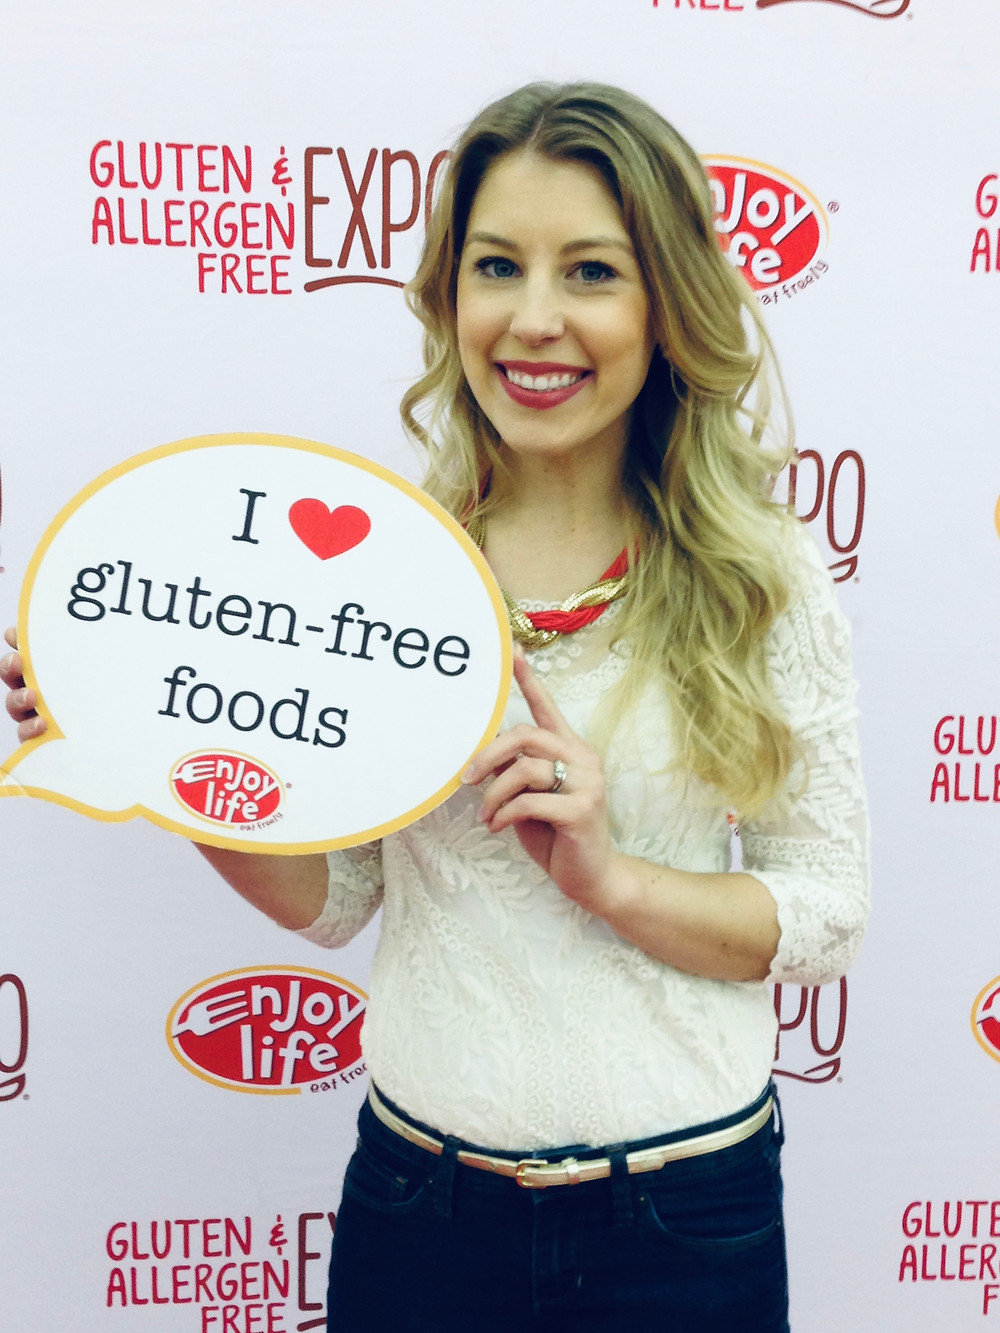 Dr. Bruner at Gluten Free Expo (GFAF Expo)